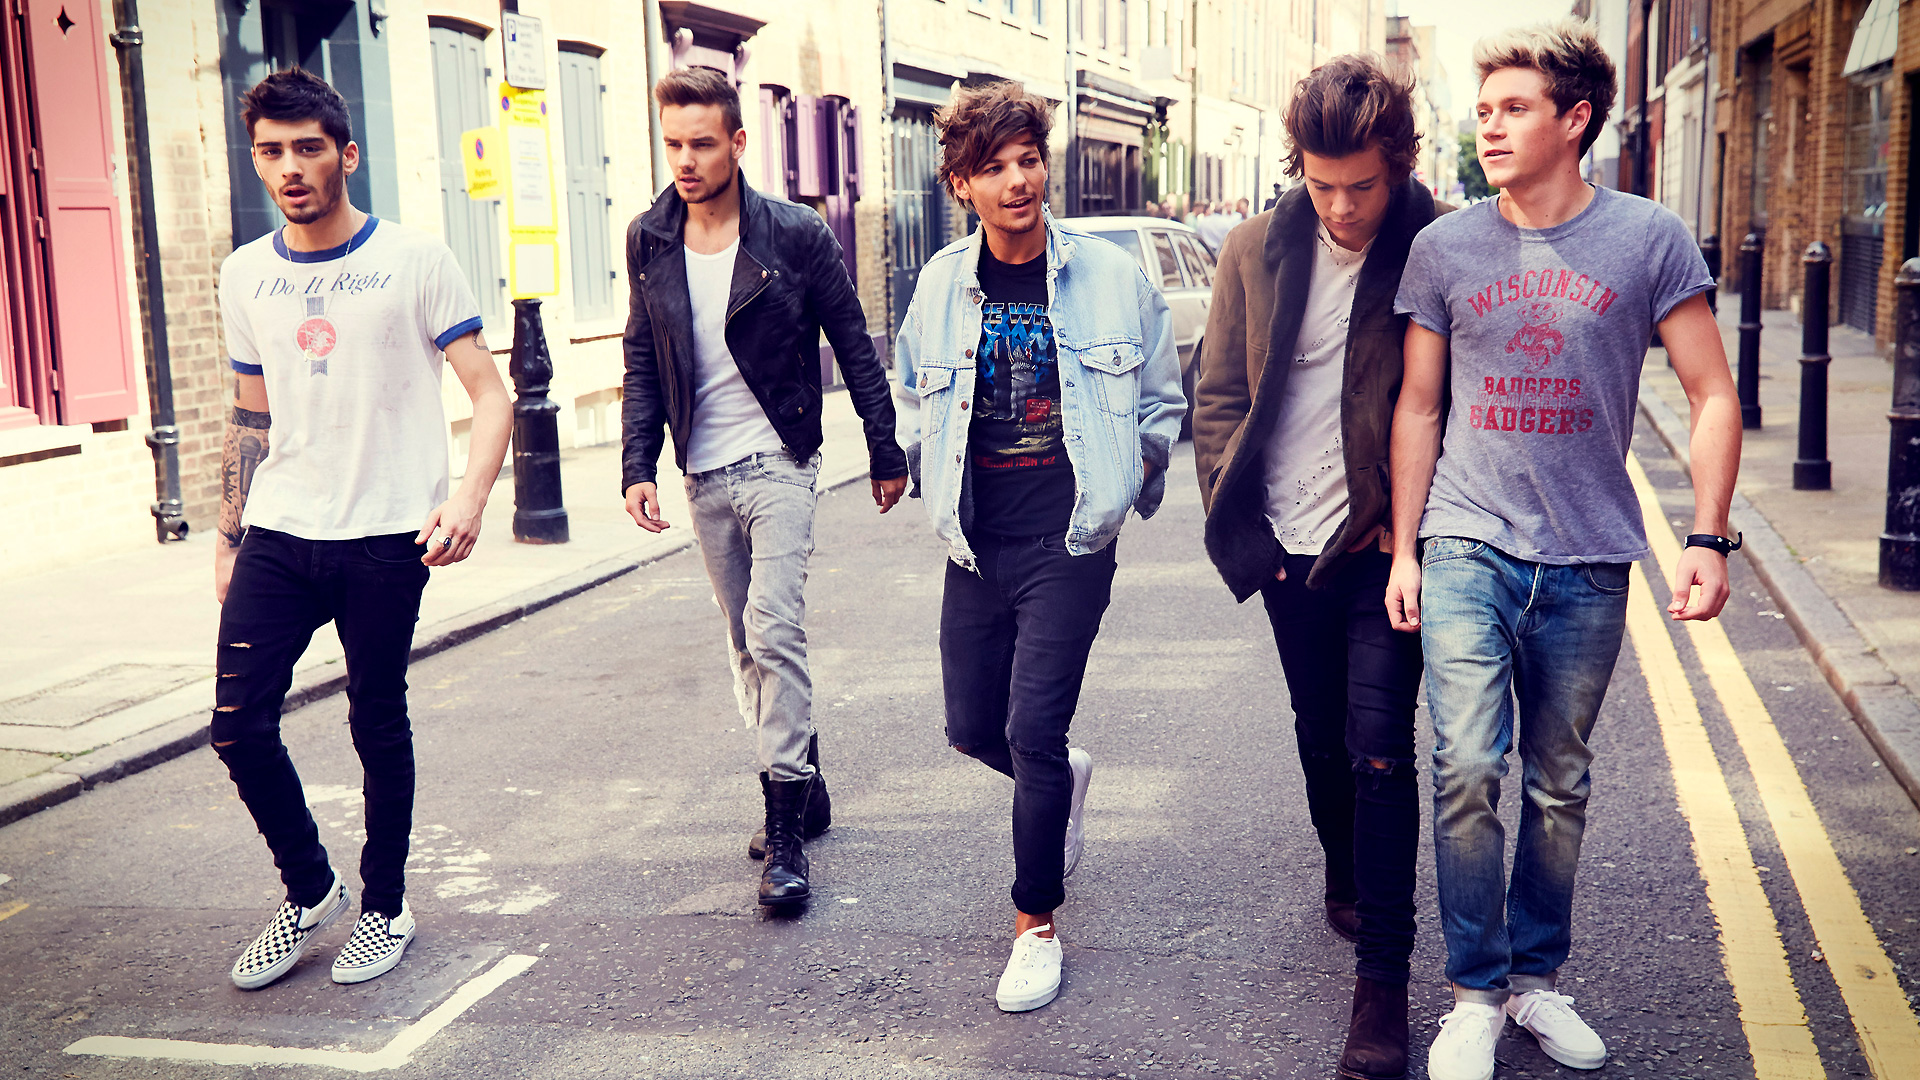 One Direction HD Wallpaper | Background Image | 1920x1080 | ID:524075 - Wallpaper Abyss